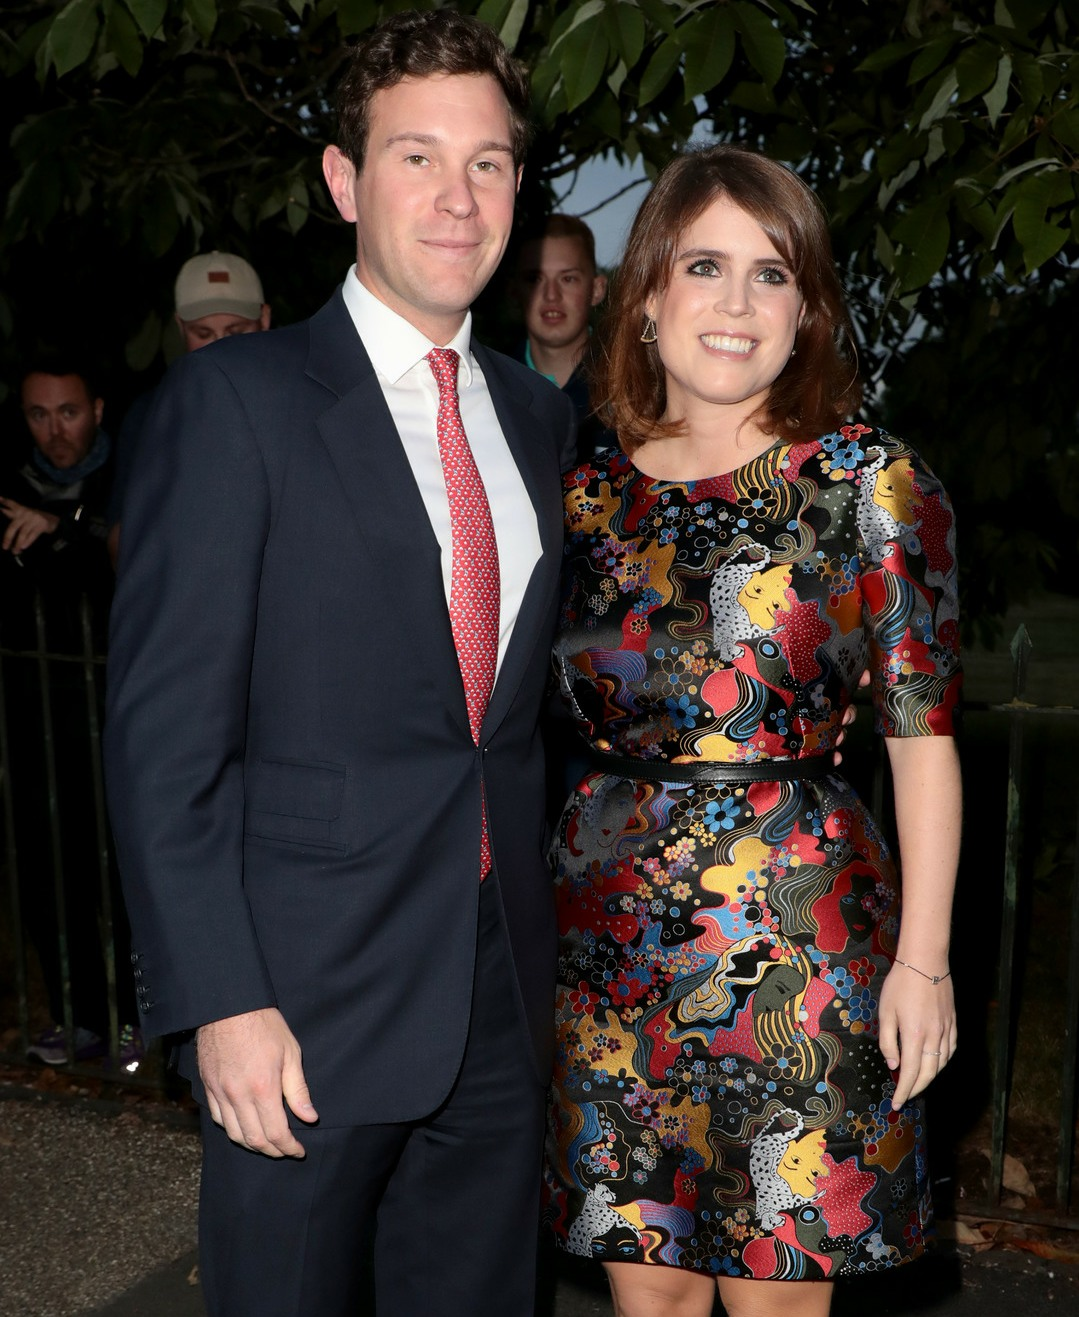 Princess Eugenie of York, Jack Brooksbank at The Summer Party presented by Serpentine Galleries and Chanel in London